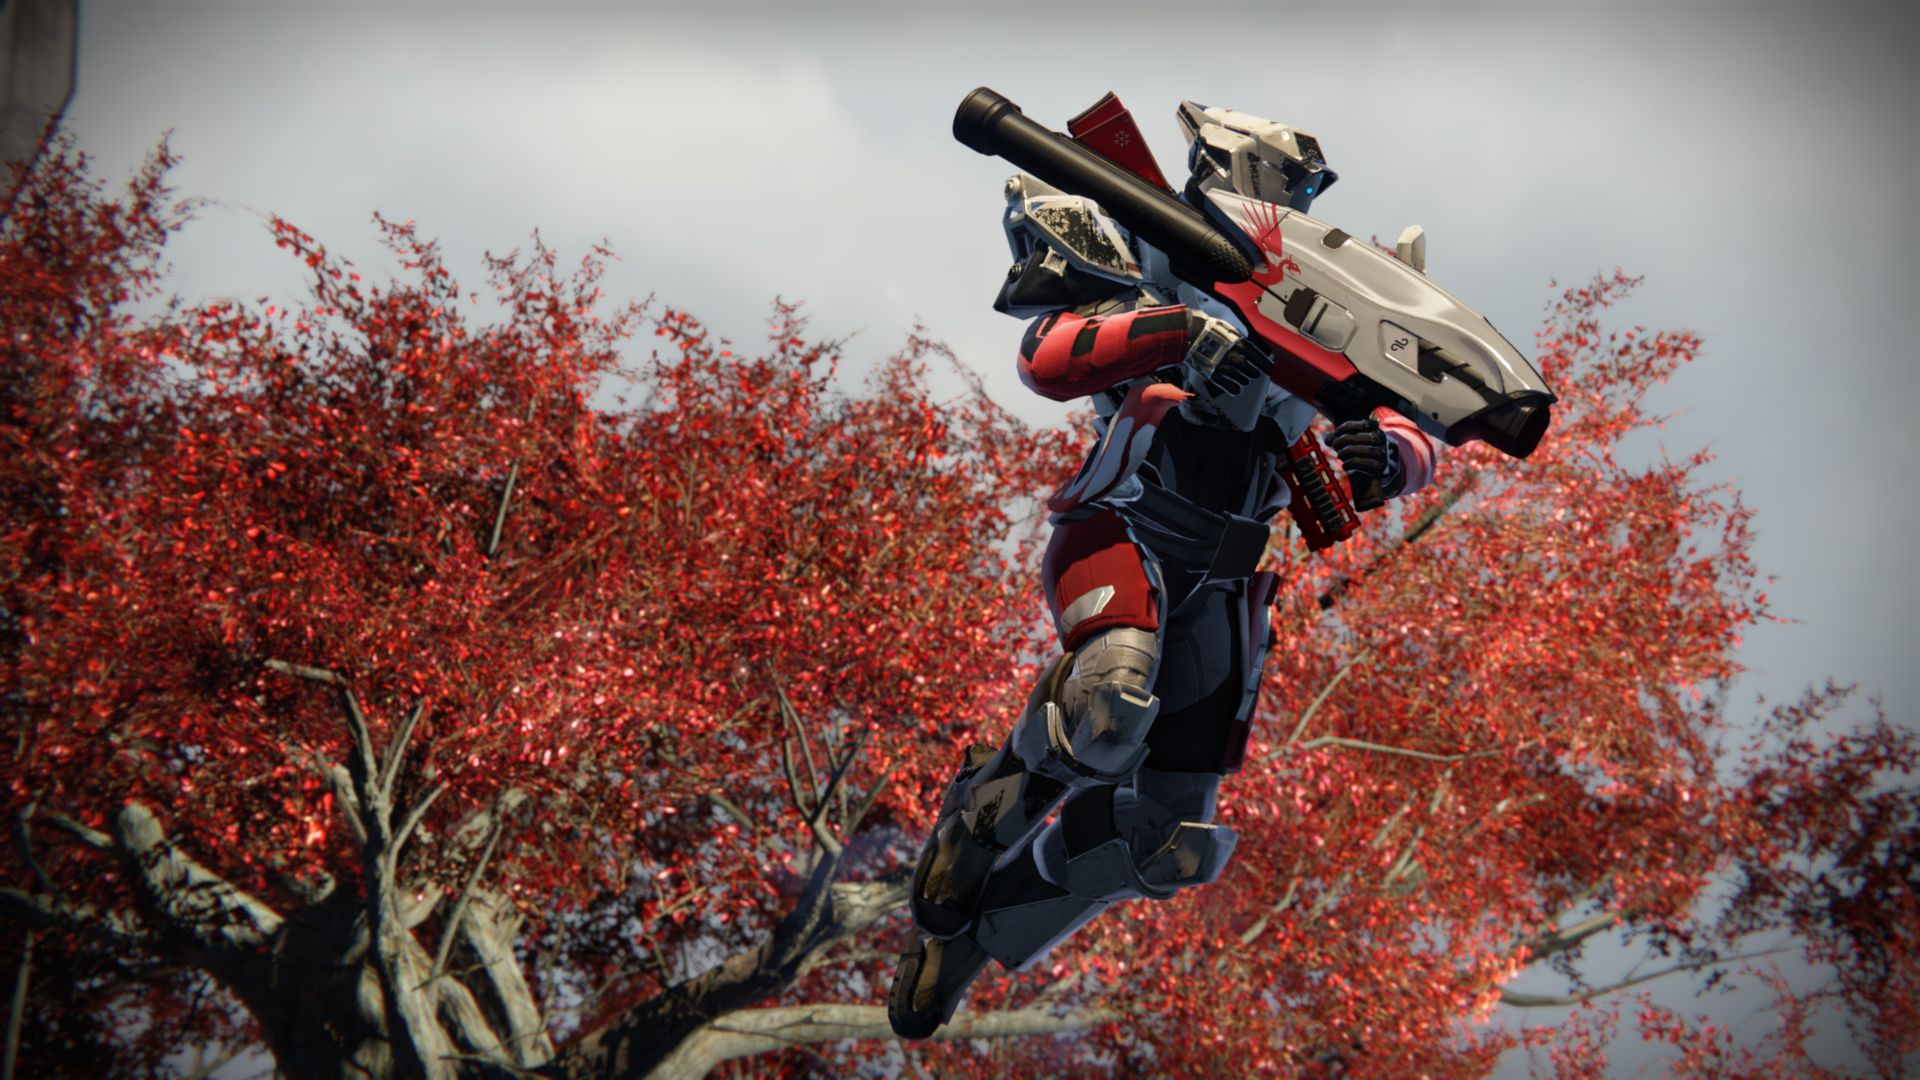 Destiny: The Taken King - did it turn out okay in the end?